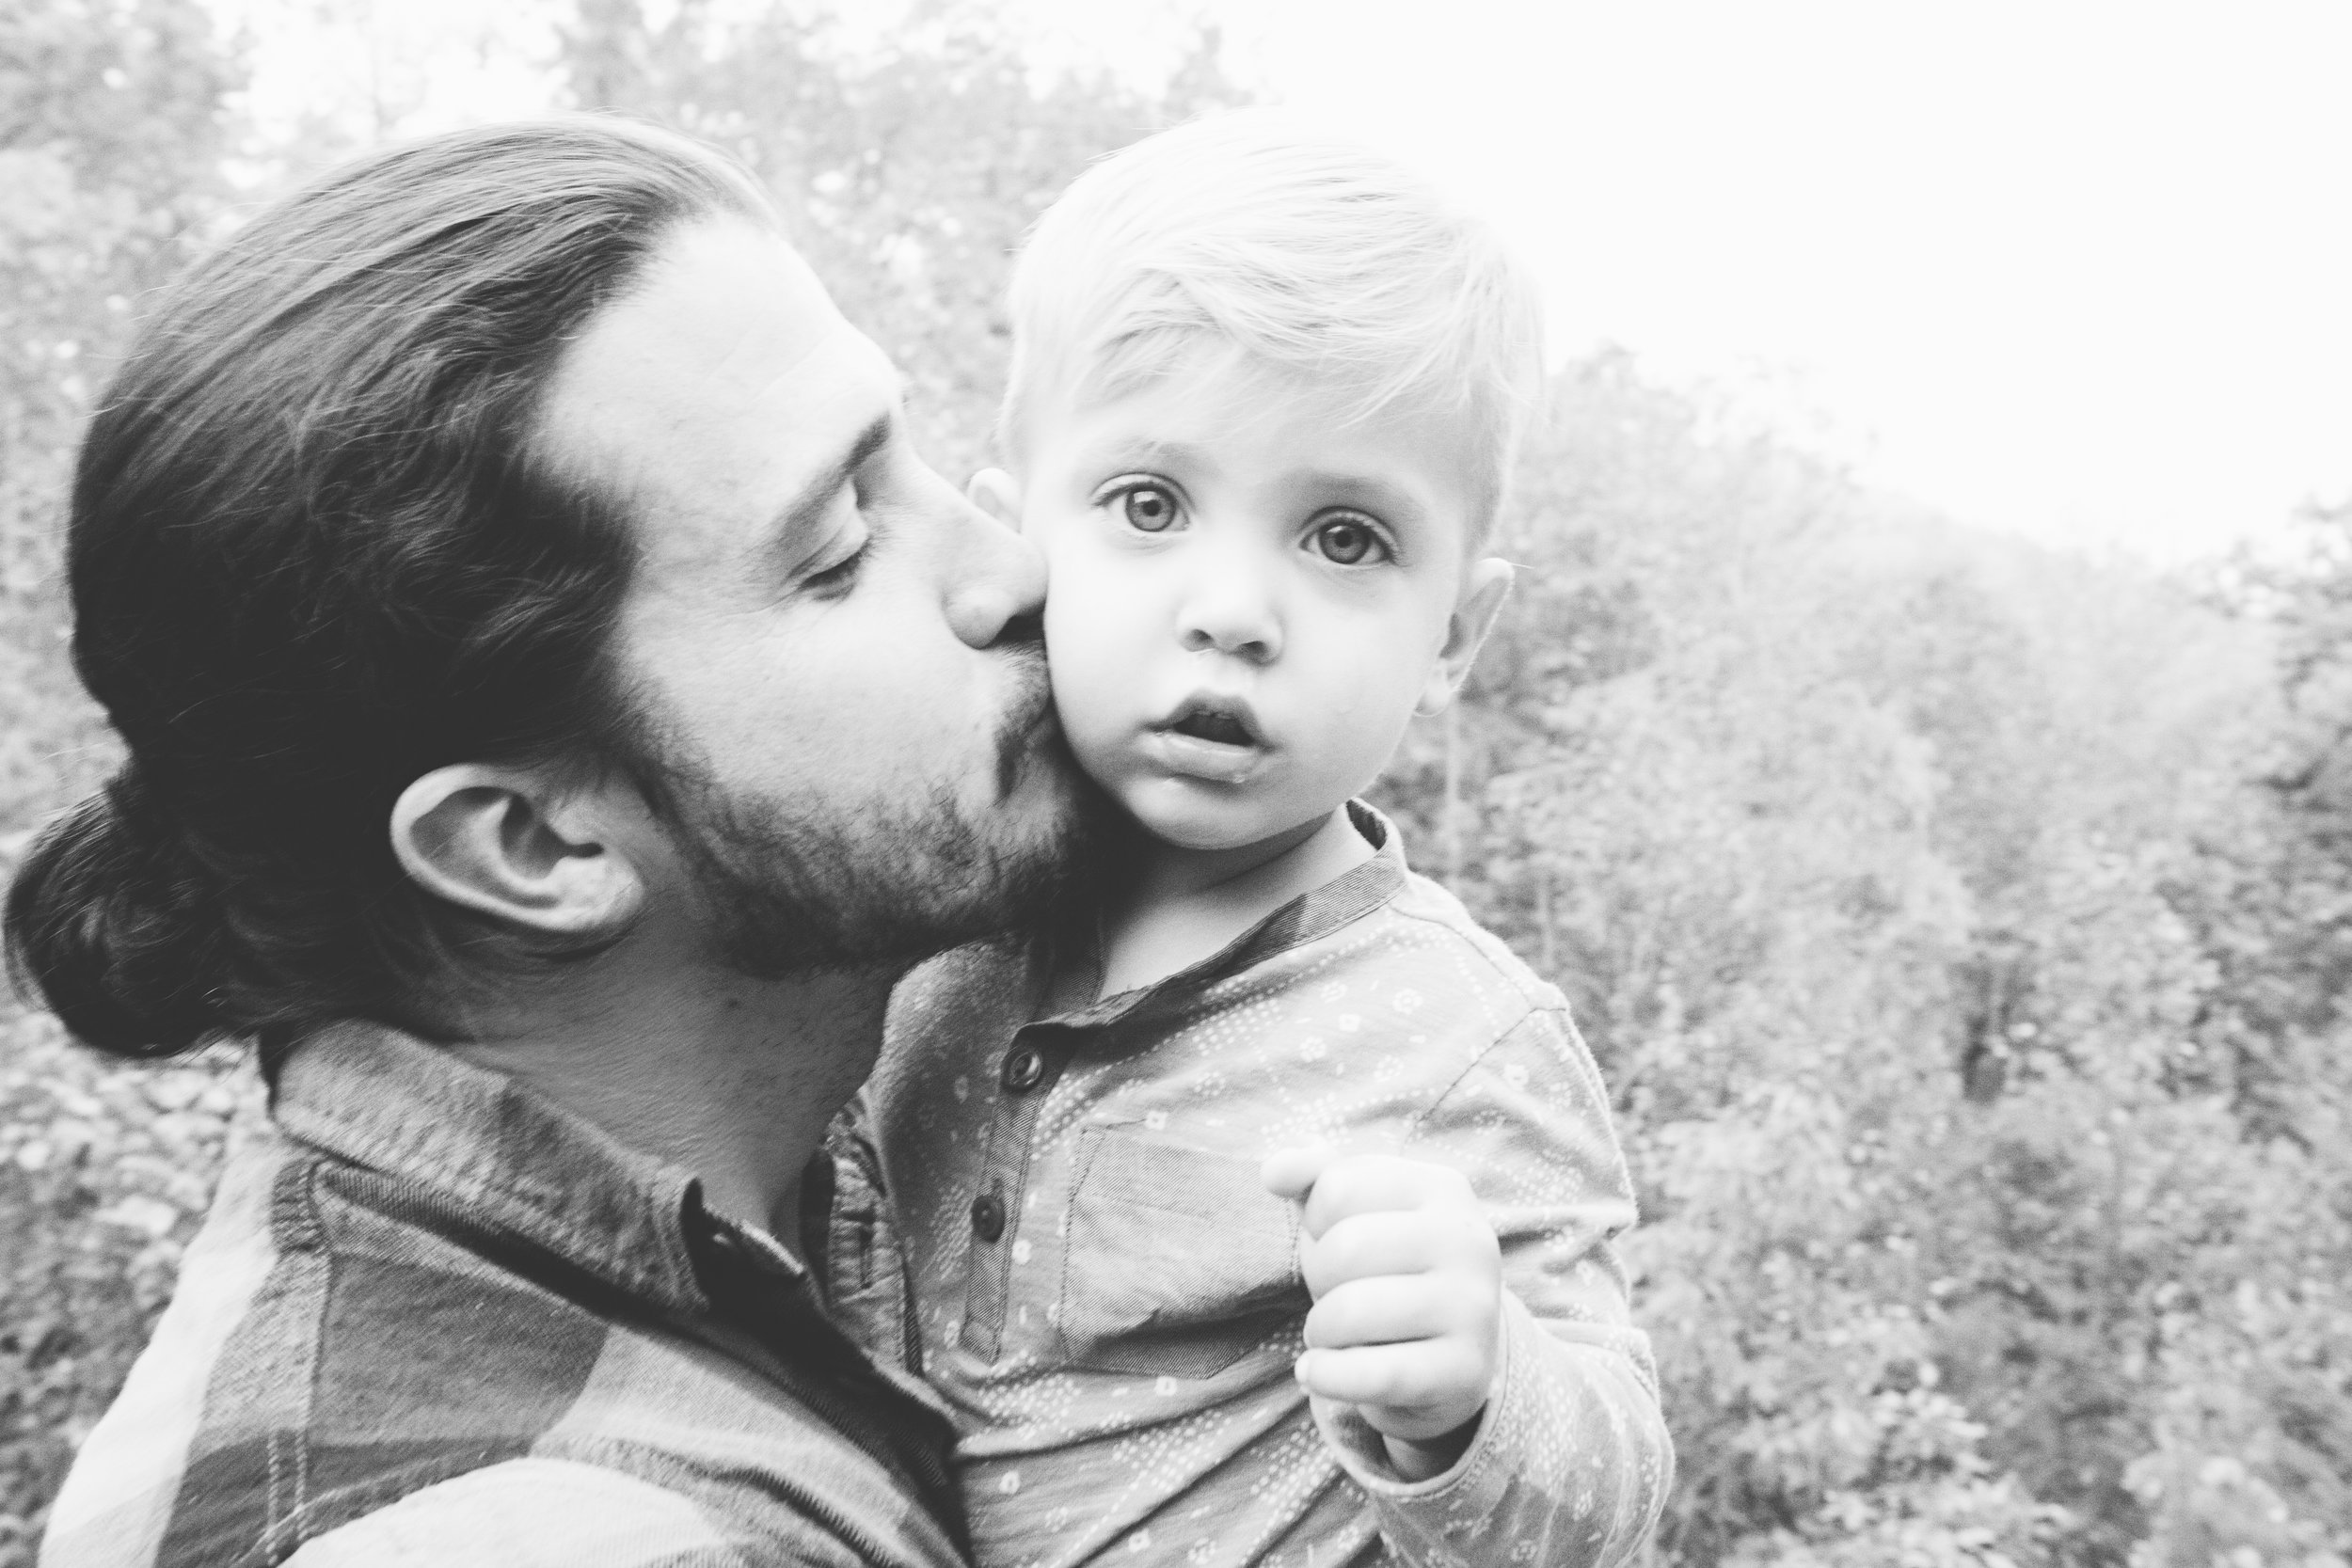 family, poses, outdoor, Knoxville, ideas, outfits, large, country, field, inspiration, funny, with toddler, color scheme, creative, siblings, fall, unique, natural, natural light, photoshoot, colorful, vibrant, fall, mountains, Gatlinburg, Tennessee, large, extended, mountains, black and white